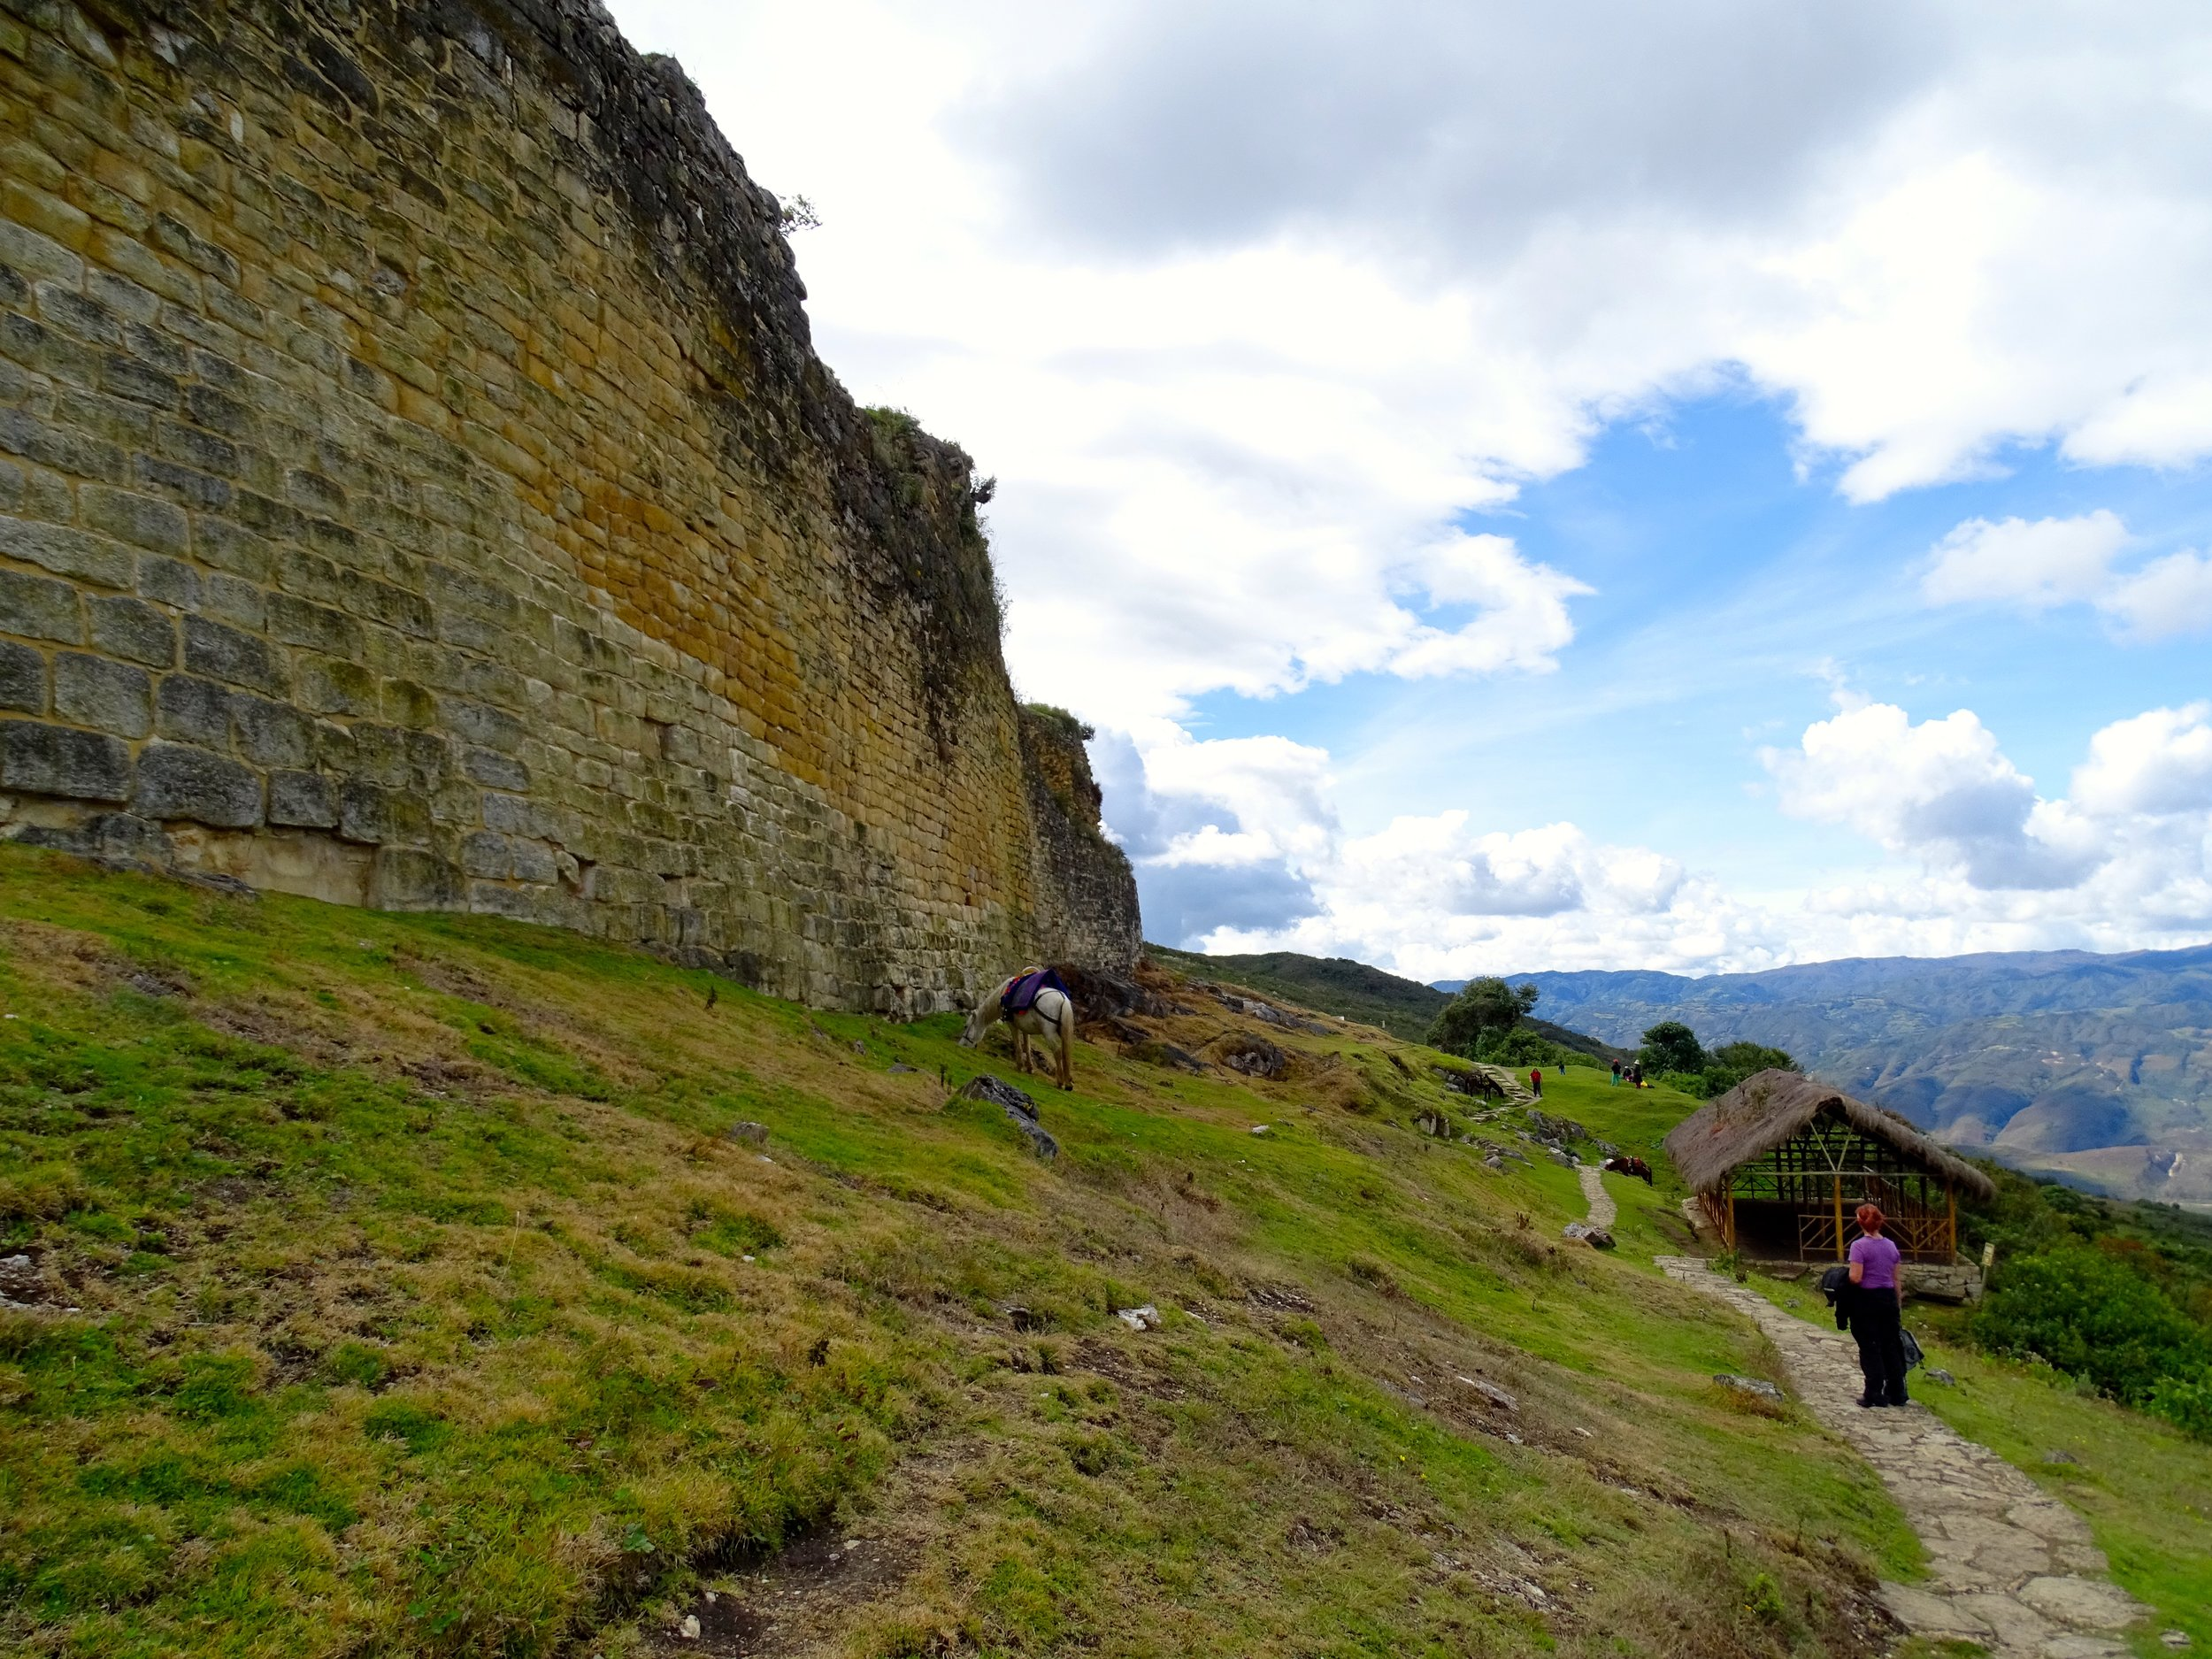 Strolling back along the outer wall.